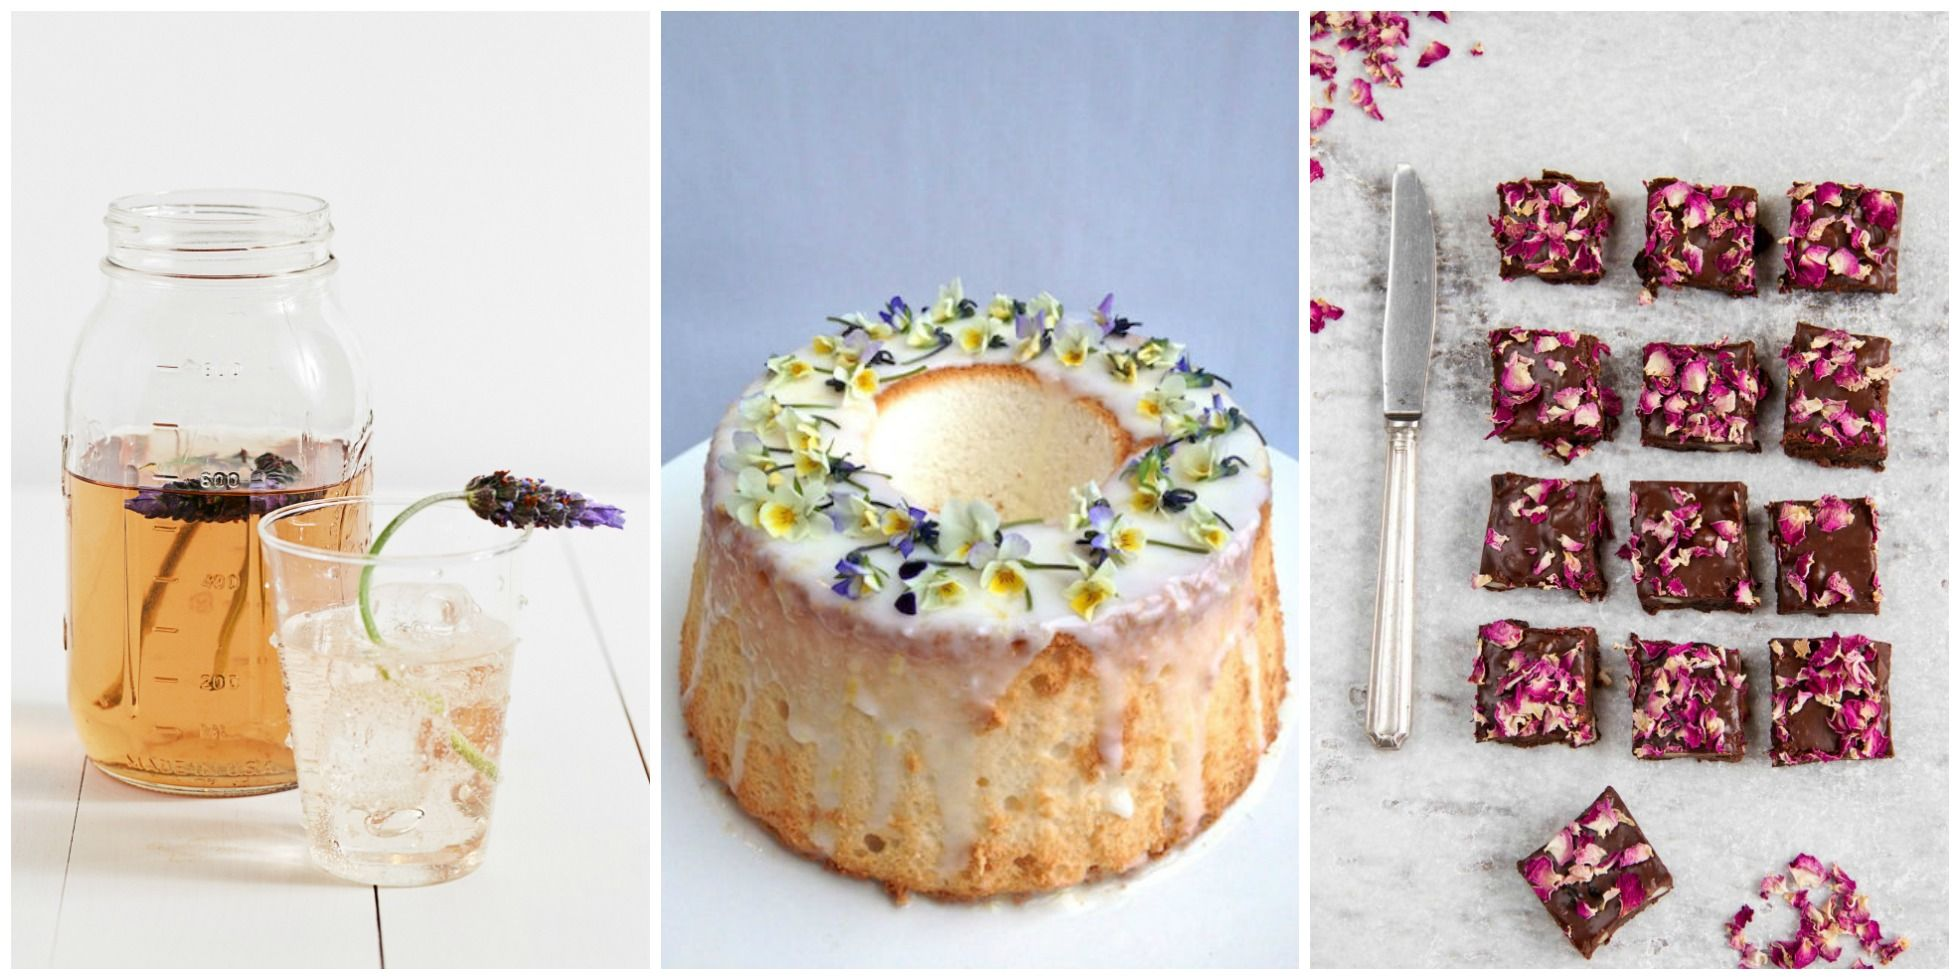 Edible Flower Recipe Ideas - How to Cook With Edible Flowers